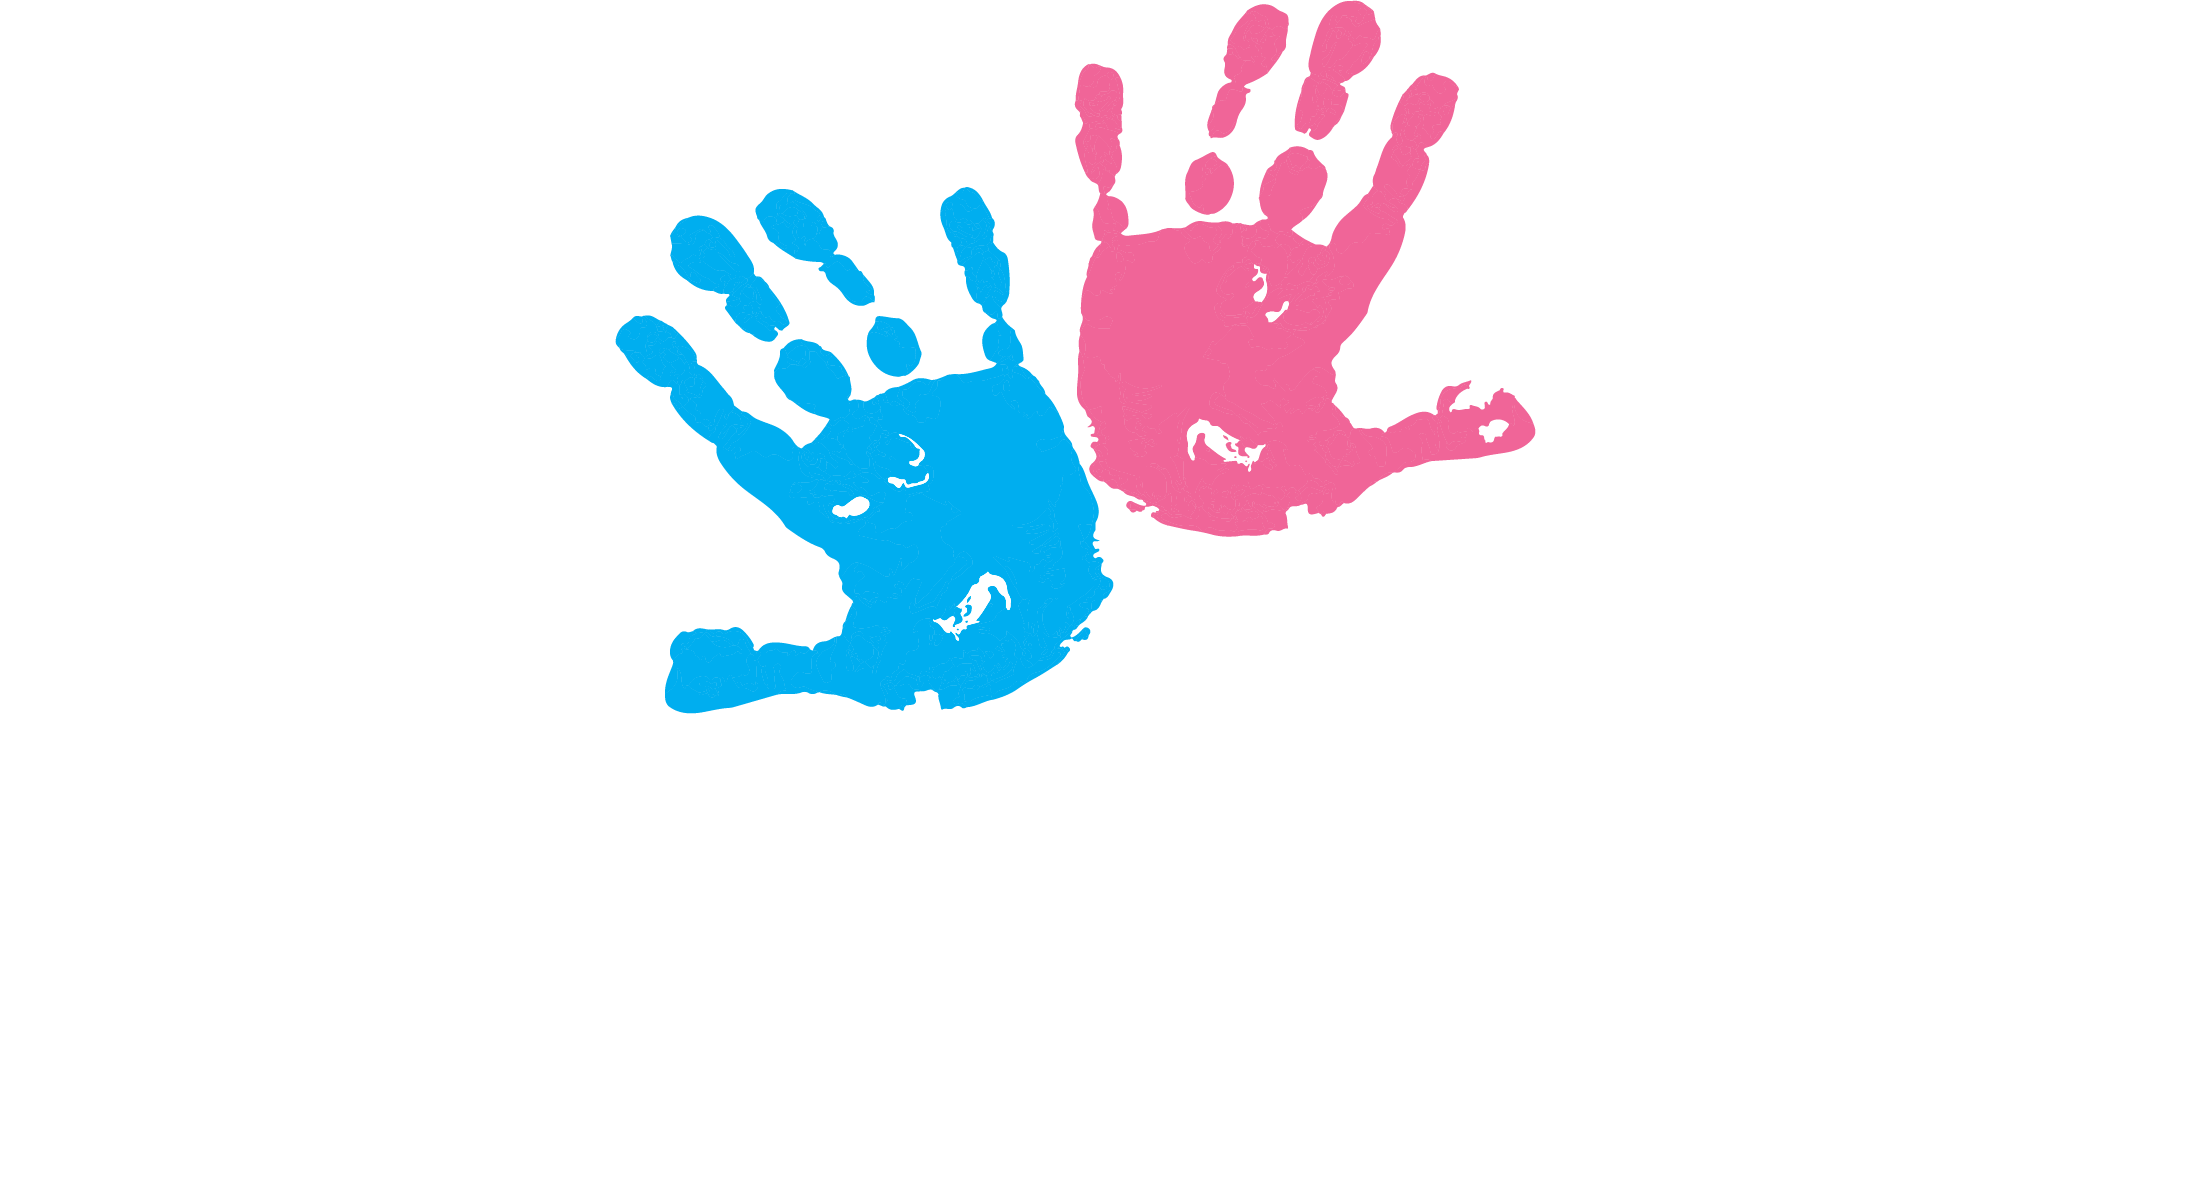 Happy Kids by Dr. Aaron logo. Hand Paint by Print of Boys & Girls to reflect chiropractic care for children.